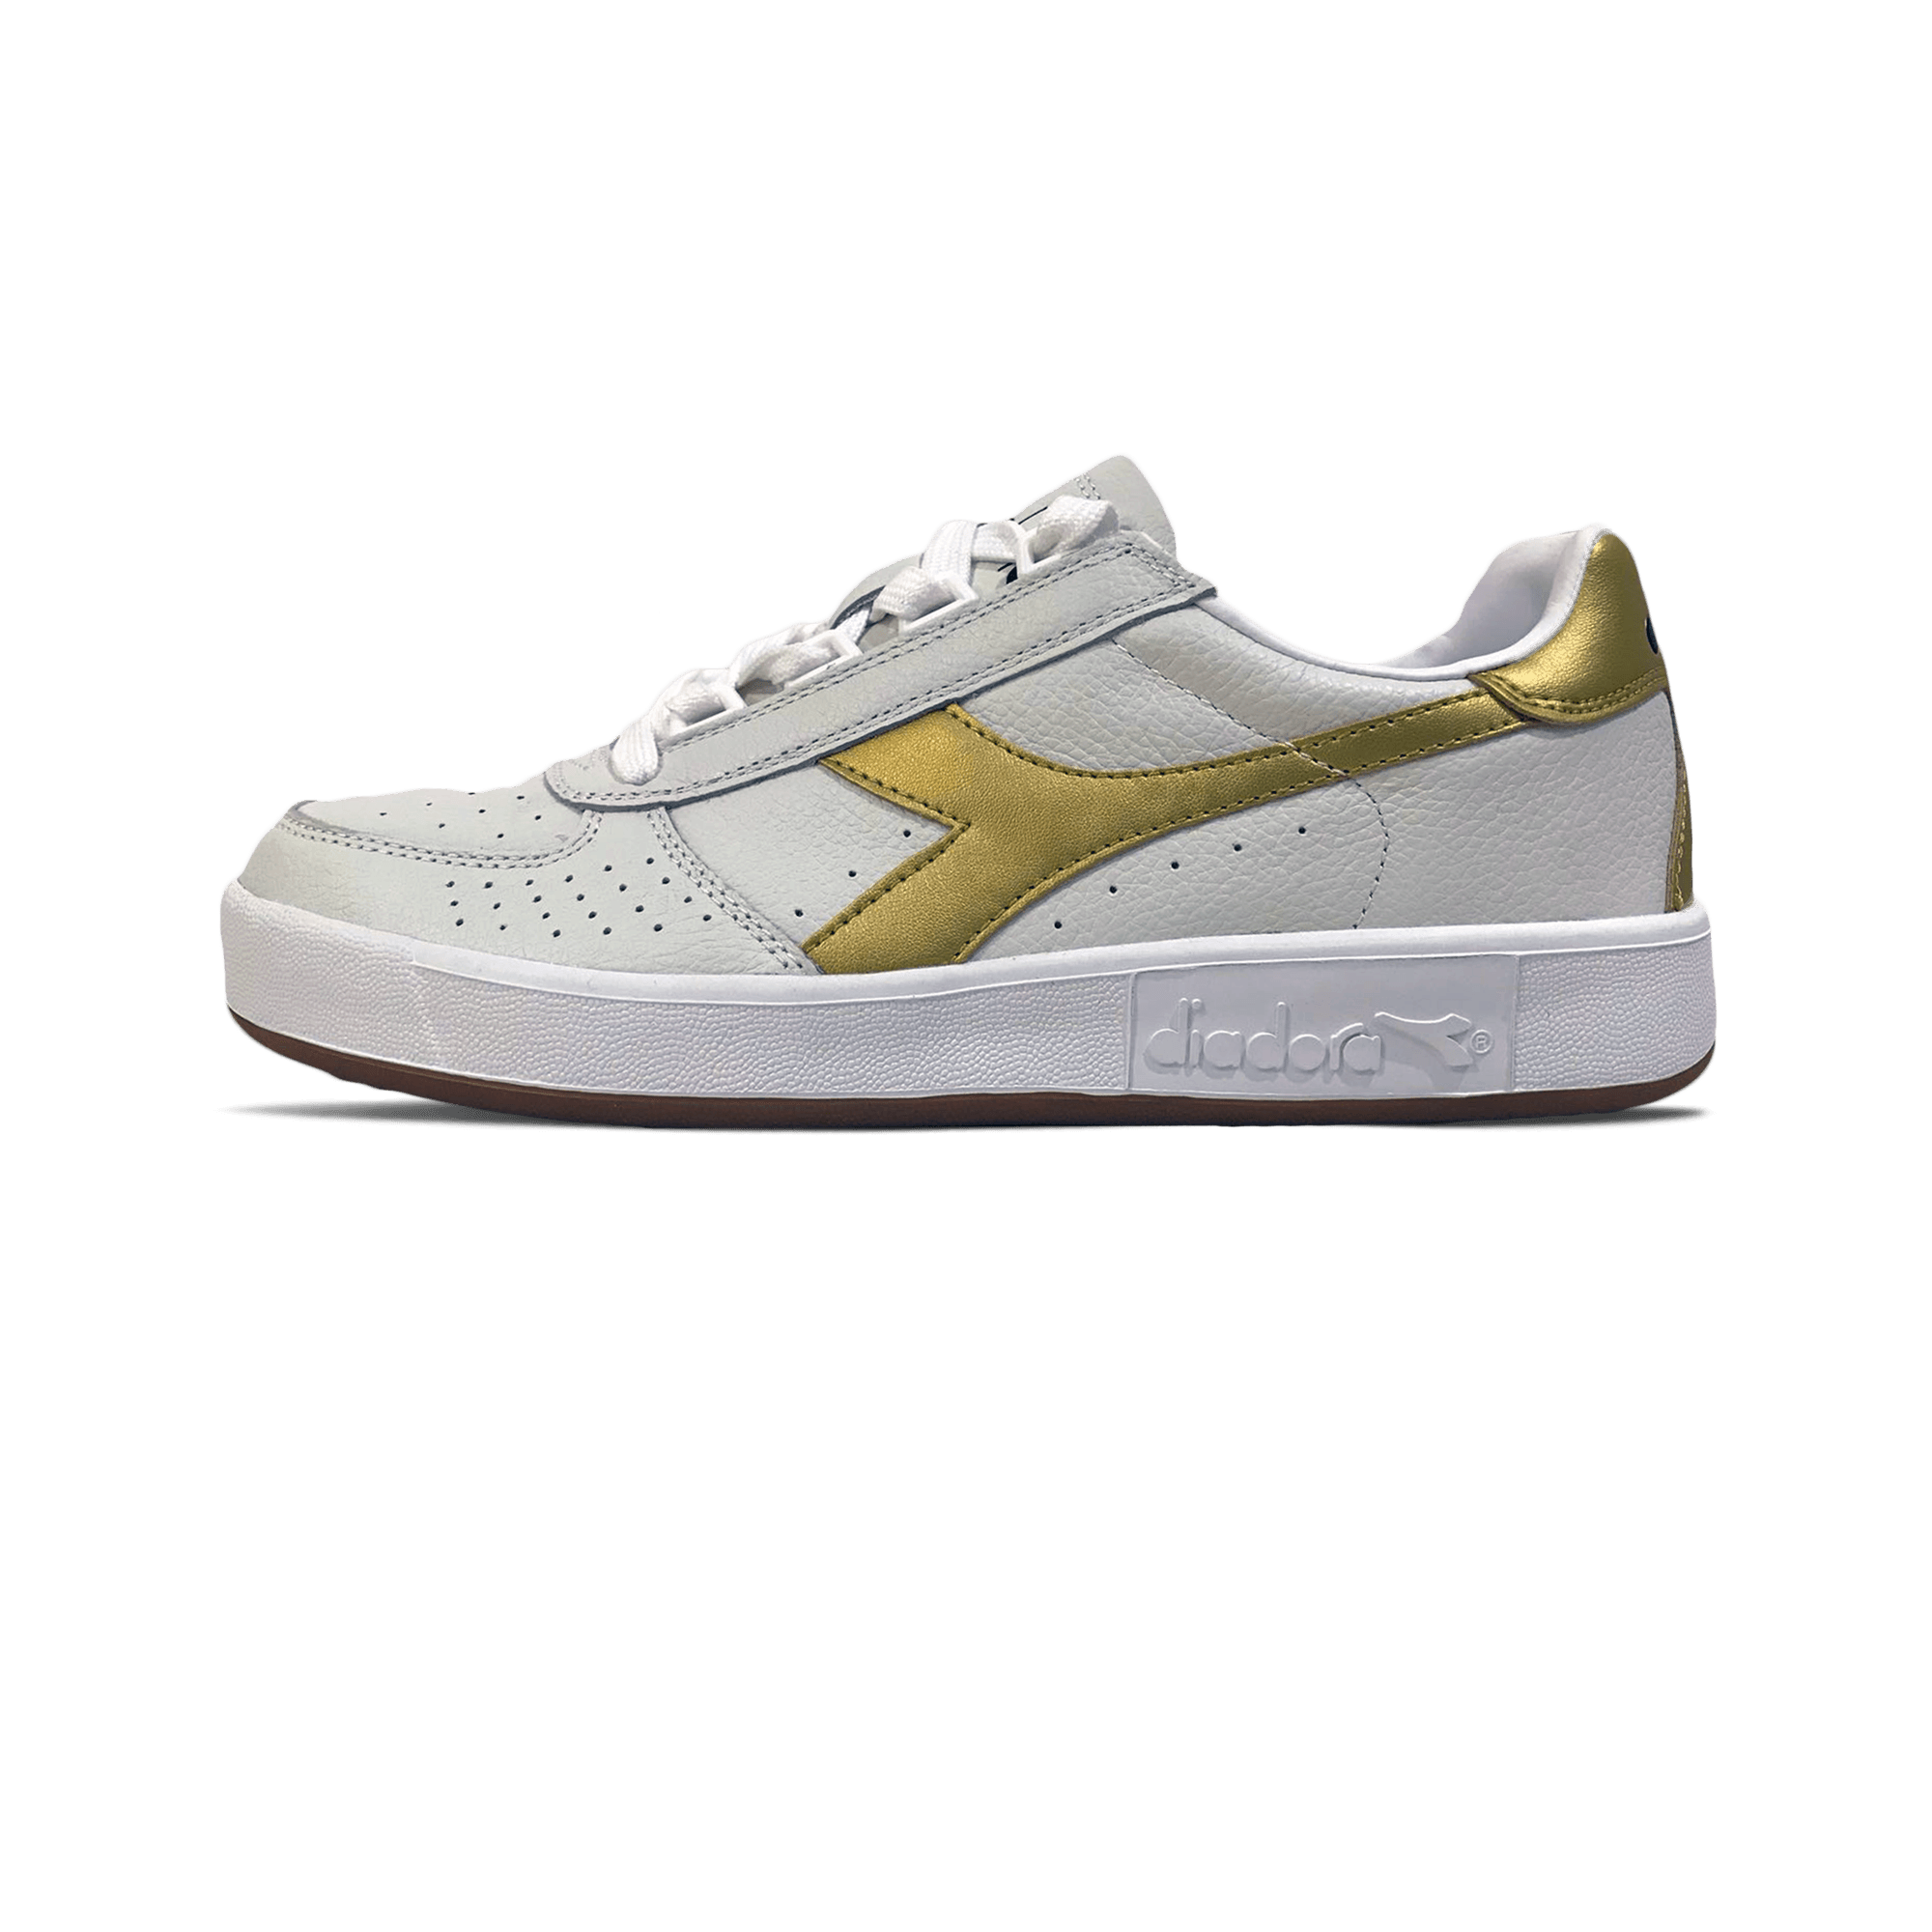 f8395e69 Diadora B.Elite L white/gold - Men | Holypopstore.com